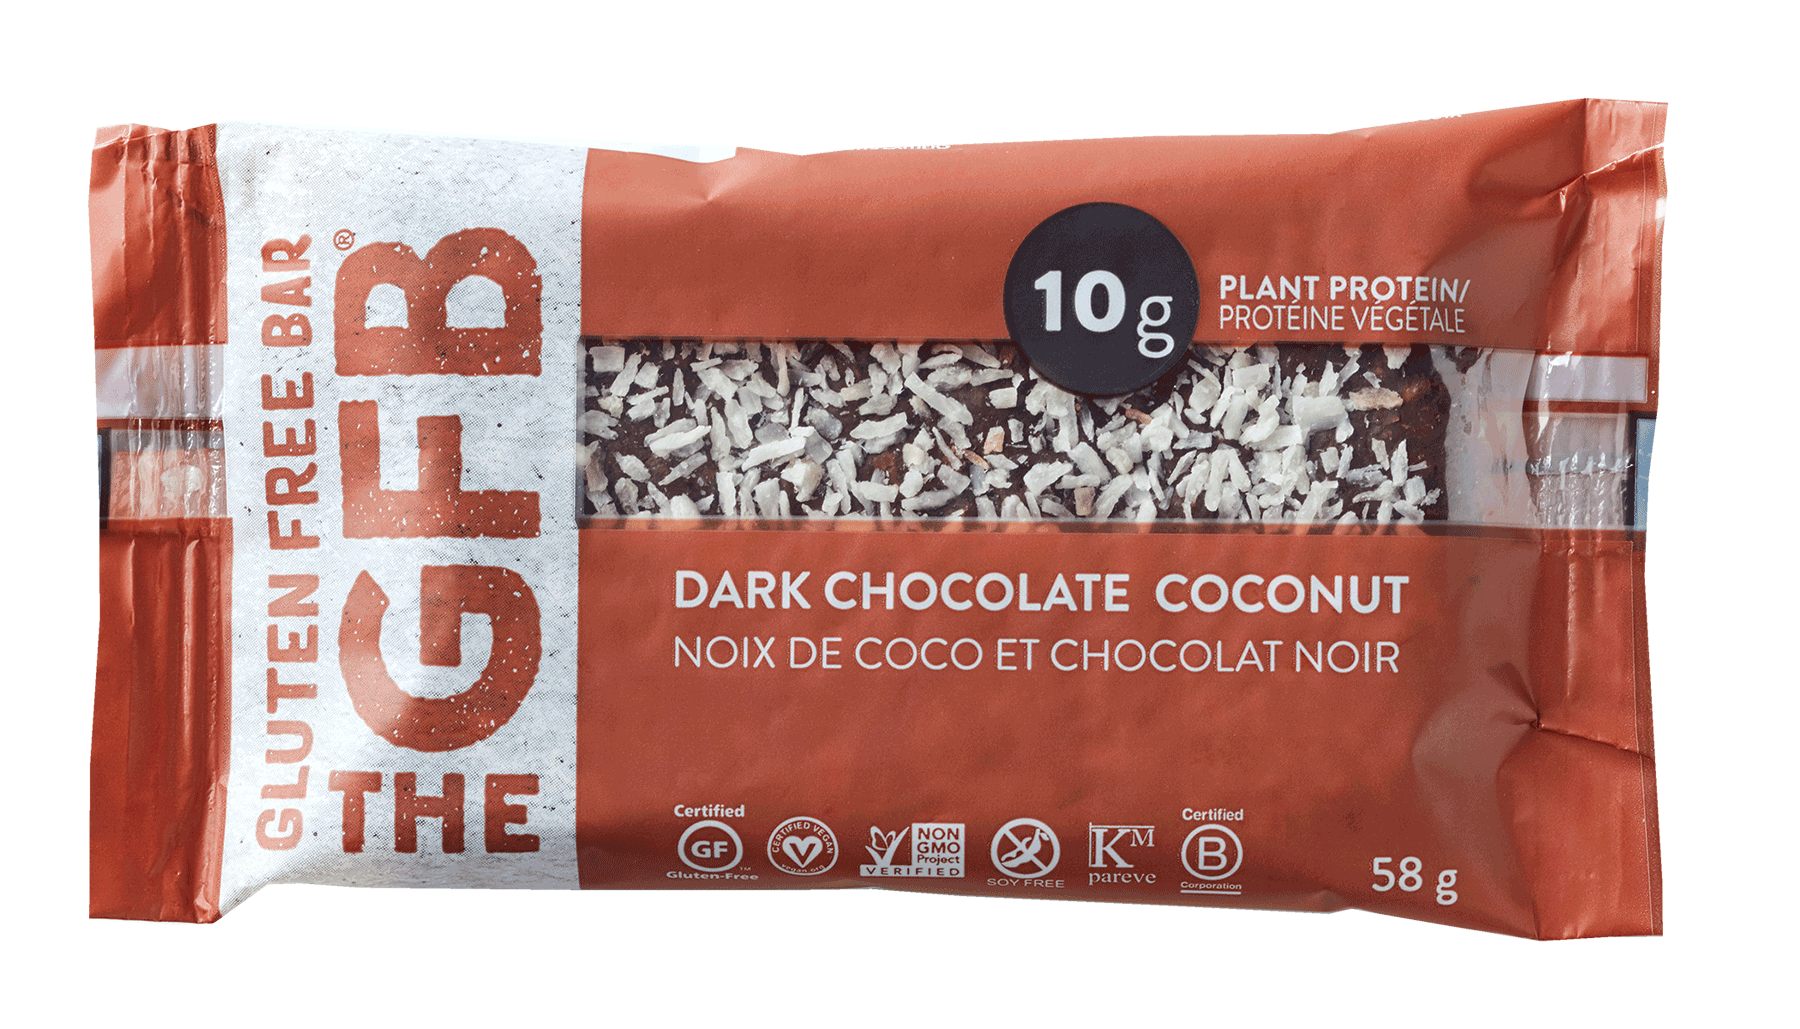 Food & Drink - Gluten Free Bar - Gluten Free Bar - Dark Chocola - 58g